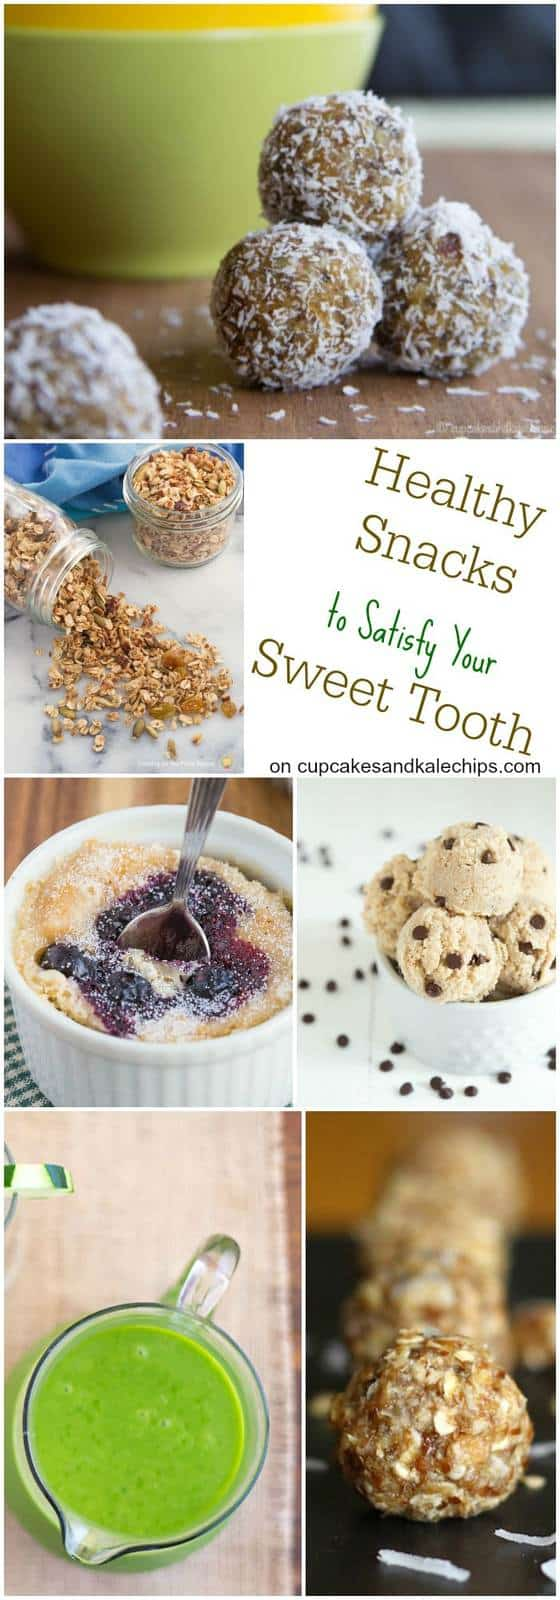 25 Healthy Snacks to Satisfy Your Sweet Tooth - snack recipes for when you are craving sweets but want to keep your healthy eating habits on track. Plenty of gluten free and vegan options too! | cupcakesandkalechips.com